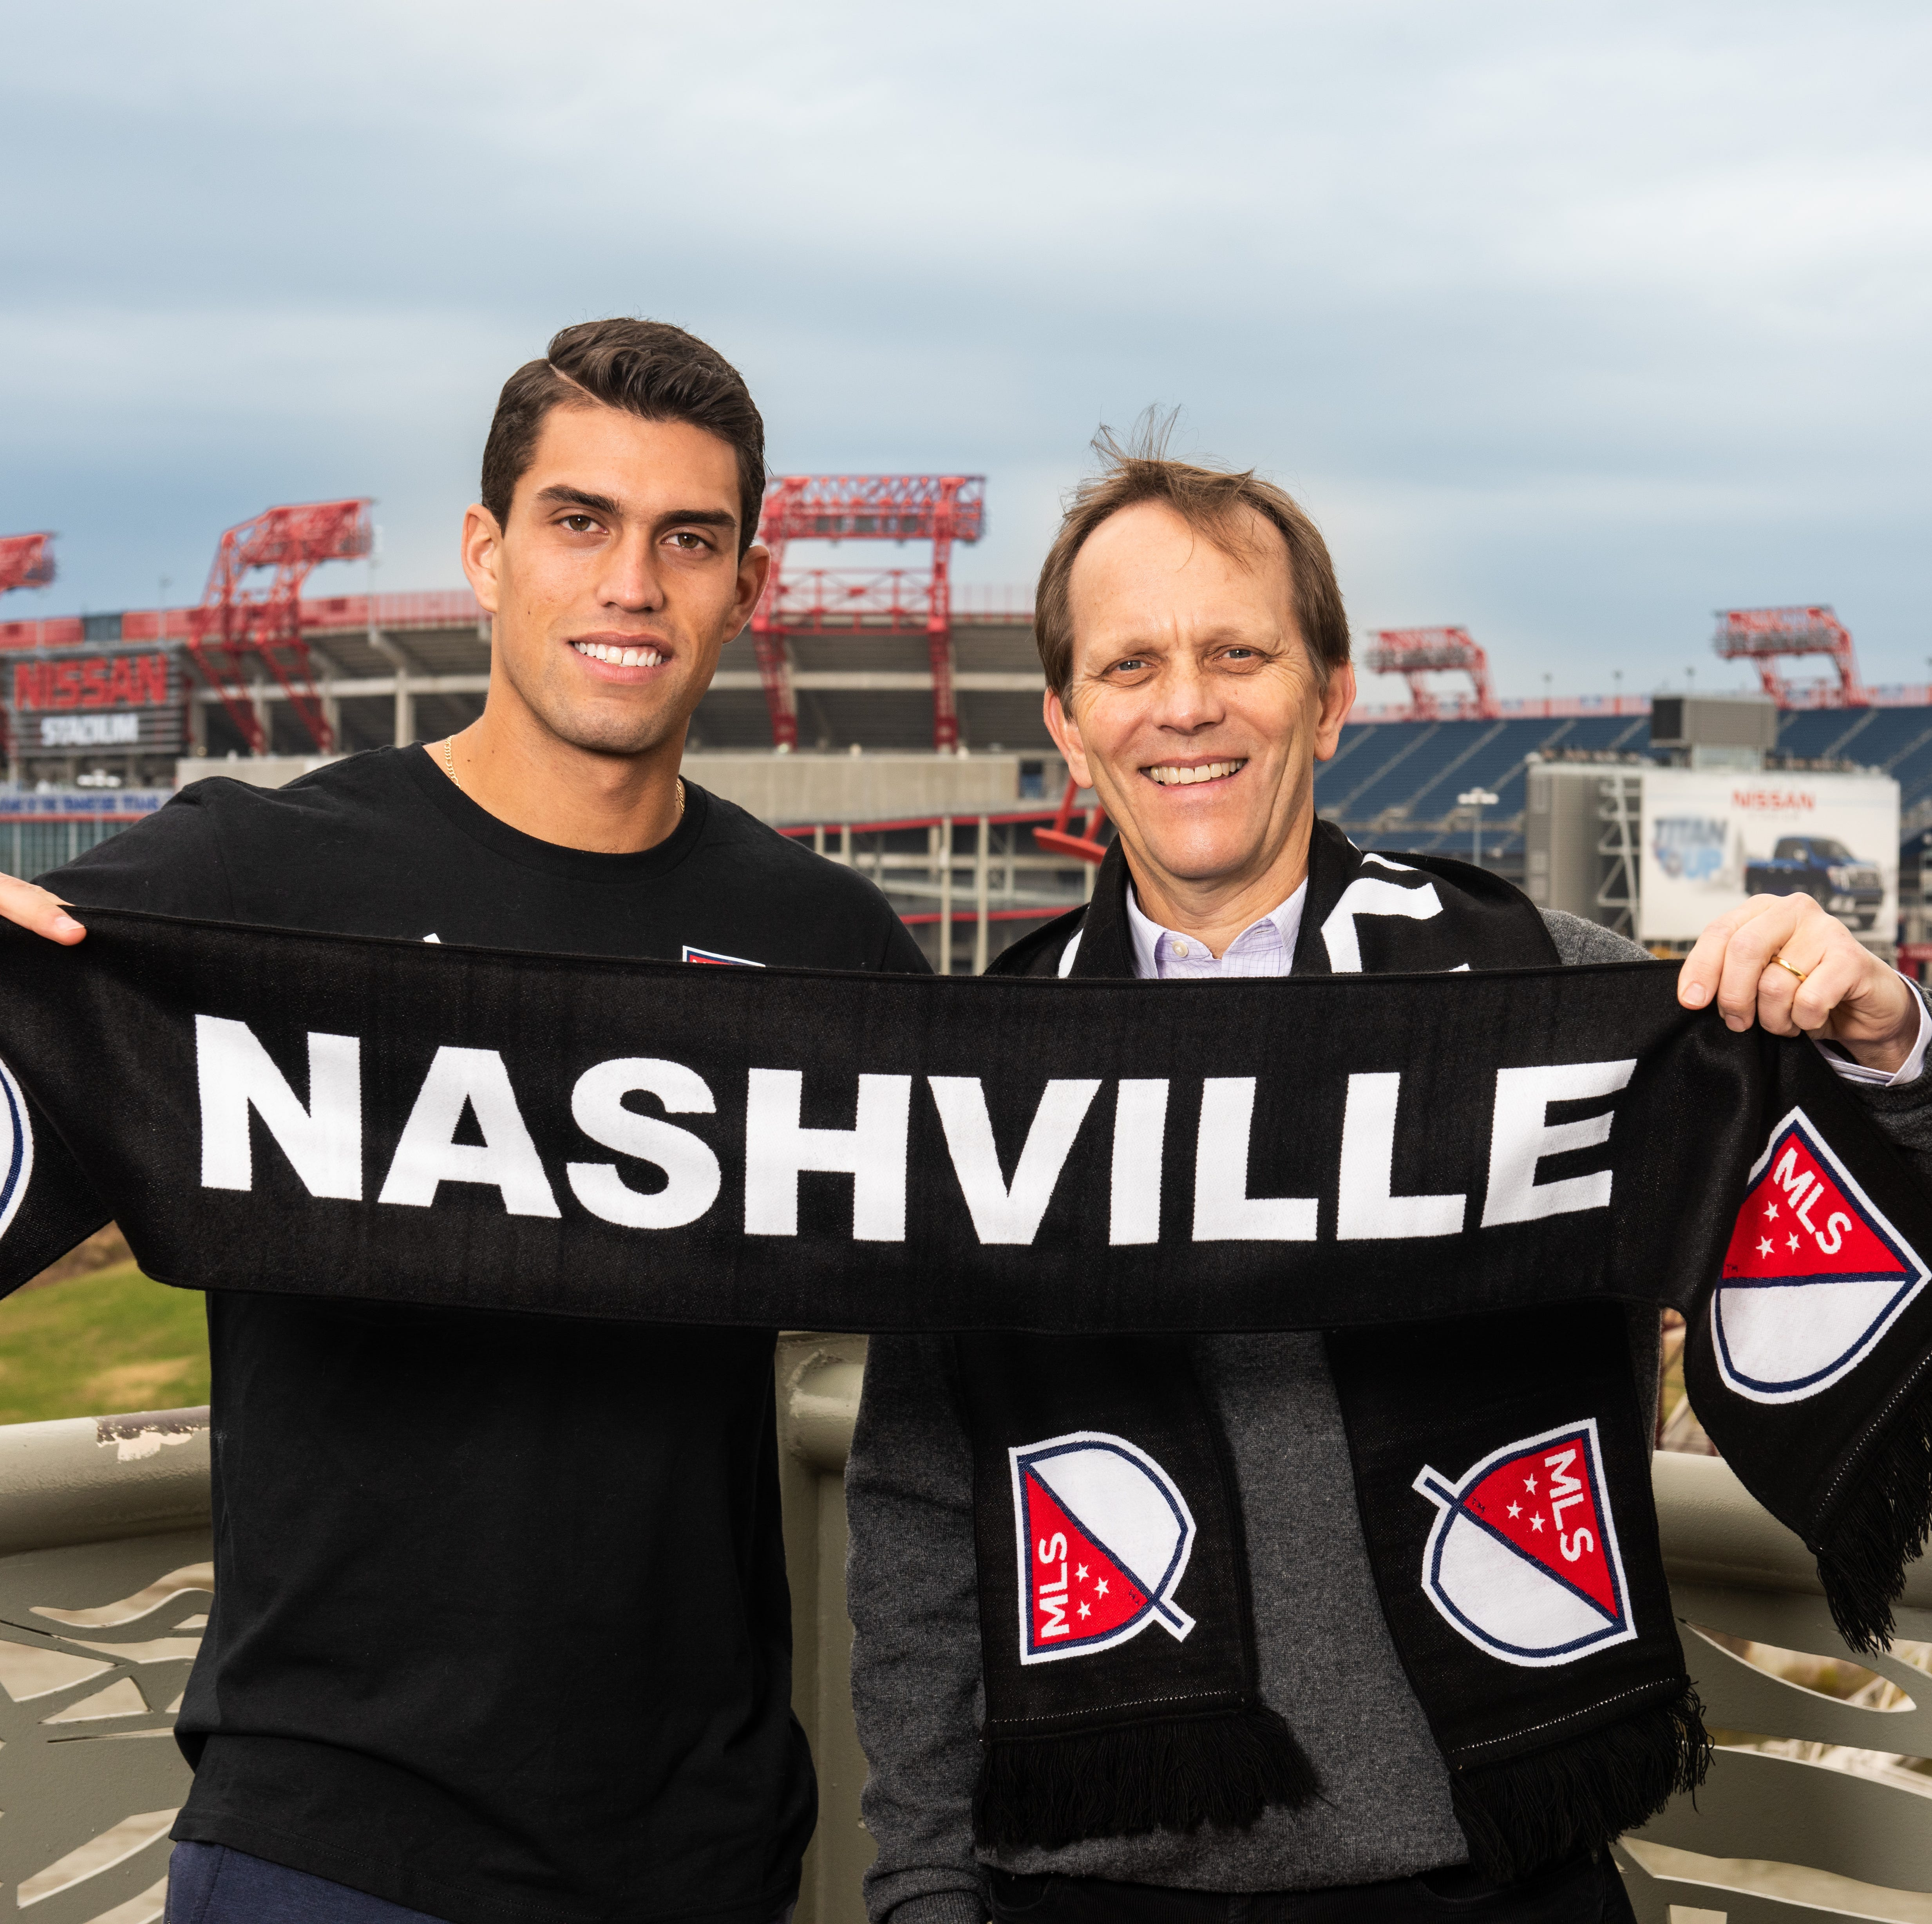 Nashville MLS team expected to unveil name, logo, colors at Wednesday event